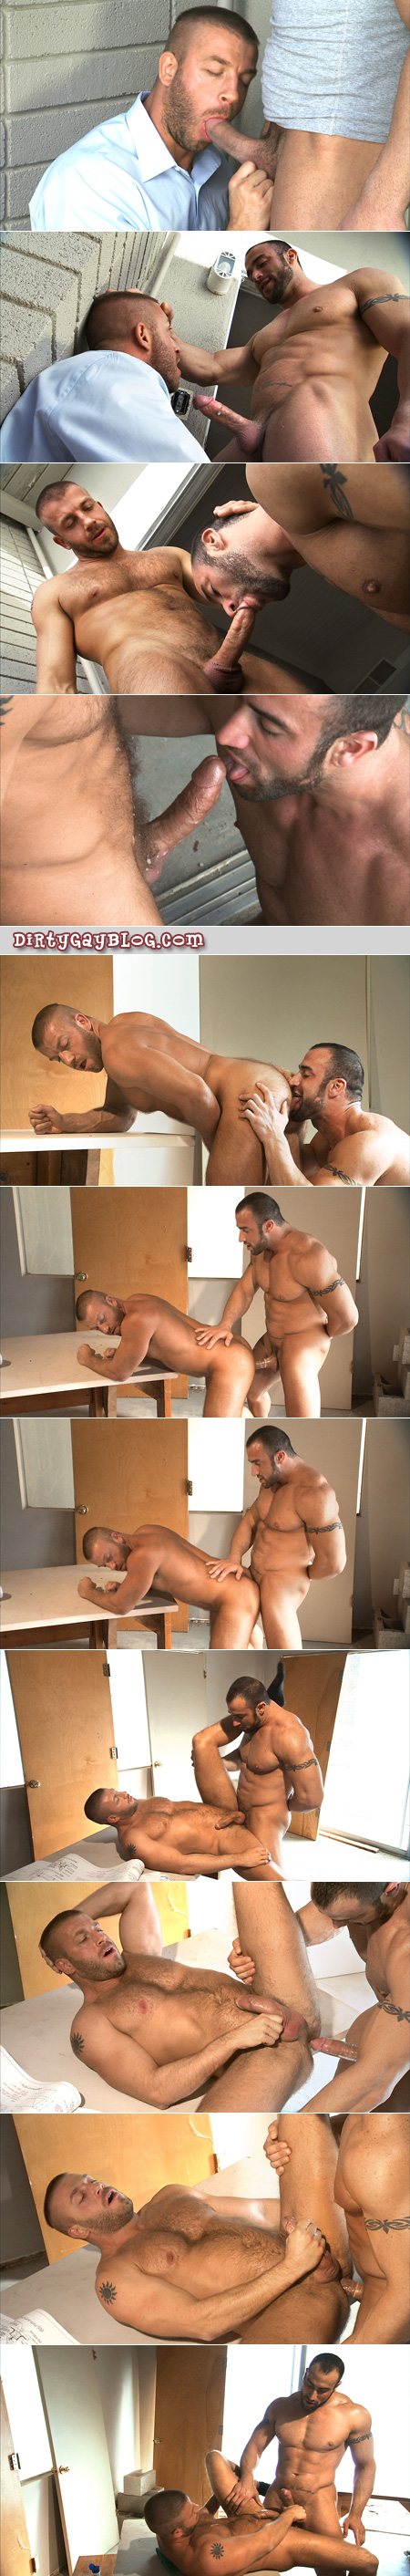 Business man comes home from work early to find a horny, muscle bound contractor and seduces him into gay fucking.